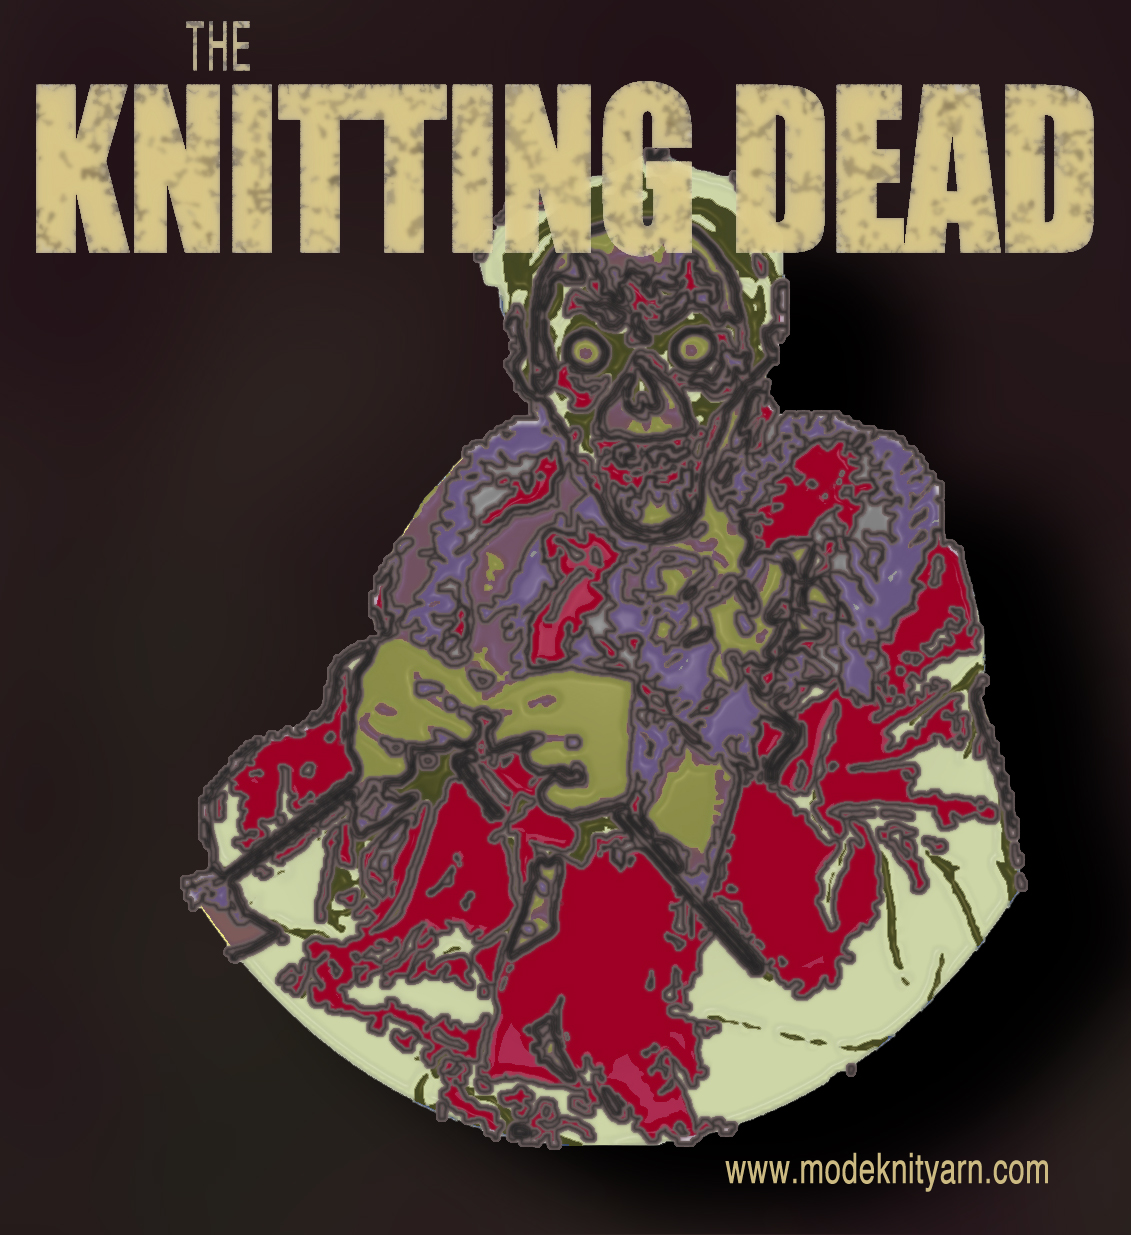 Knitting Zombies : The knitting dead modeknit